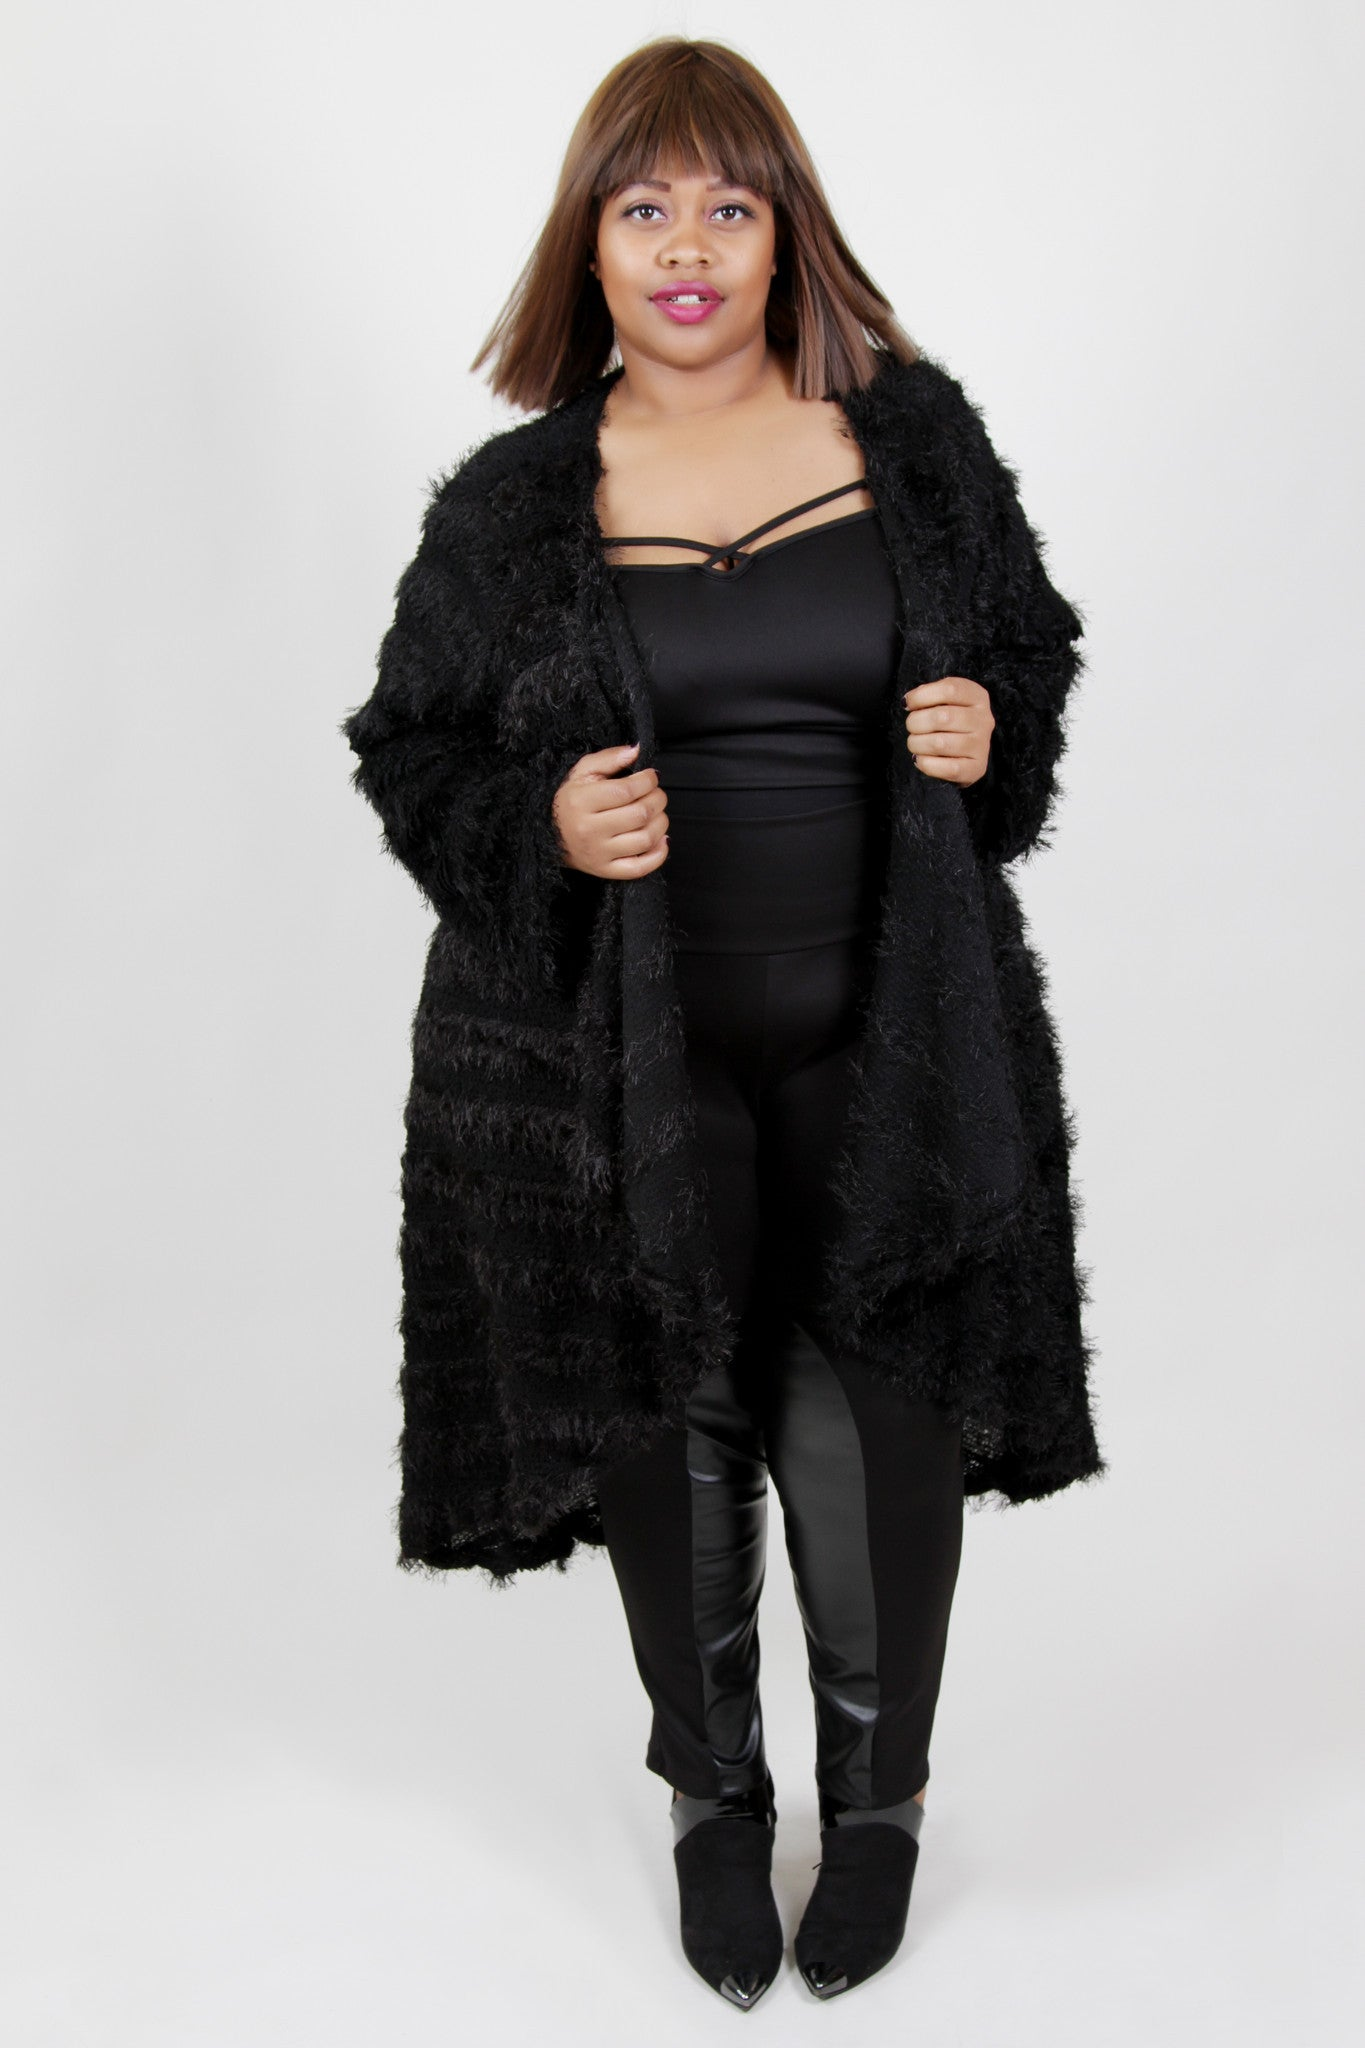 Talk about a show-stopper! This long cardigan will give you all the feels and have you feeling like you can take on the world...#girlboss style! 96% Polyester, 4% Spandex Hand wash with cold water Hang or line dry Made in U.S.A Length Arm hole Size:20/22 49